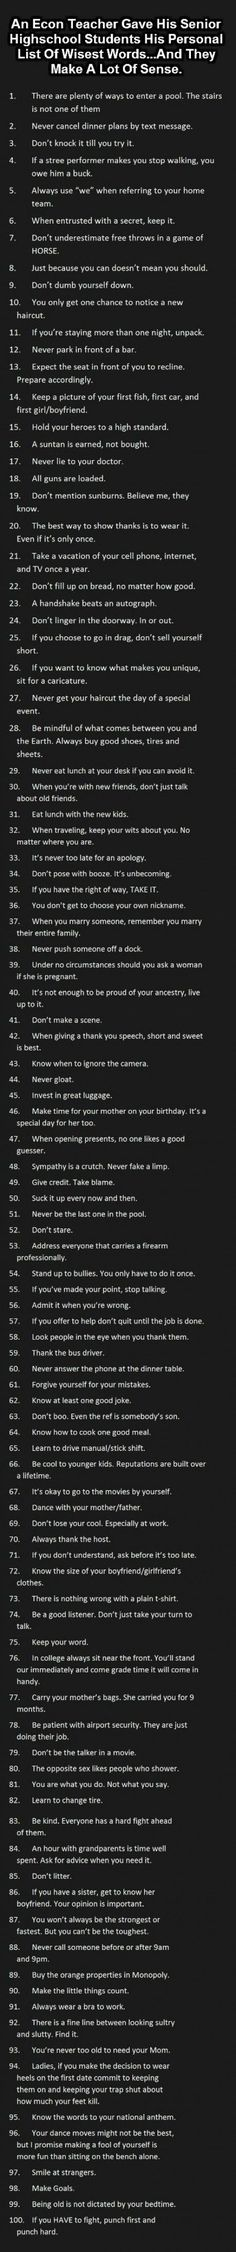 An econ teacher gave his senior high school students his personal list of wisest…